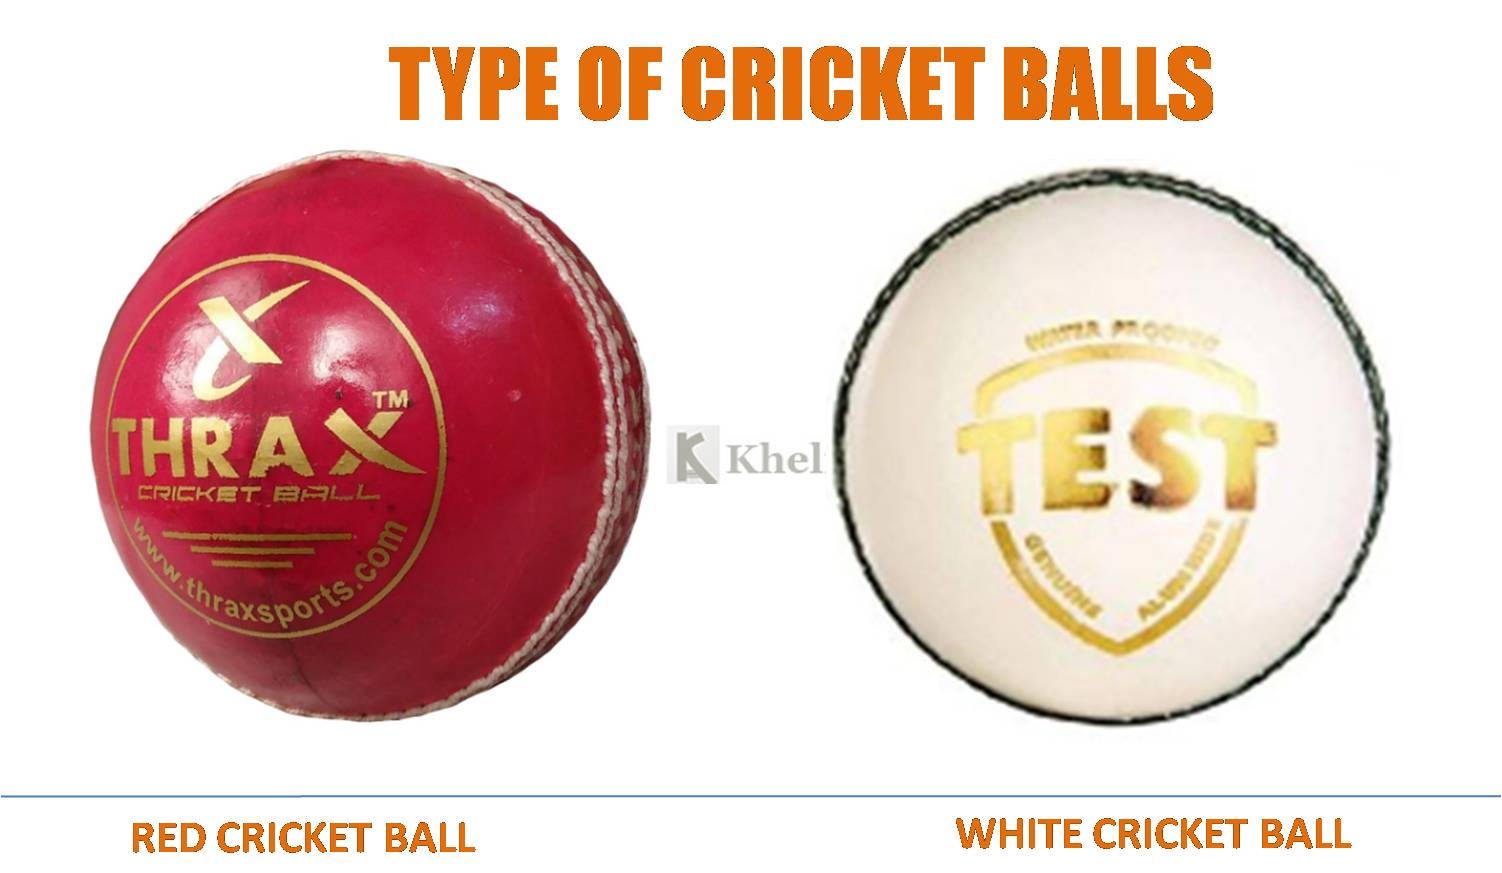 Type_of_Cricket_Balls_Type_Color.jpg